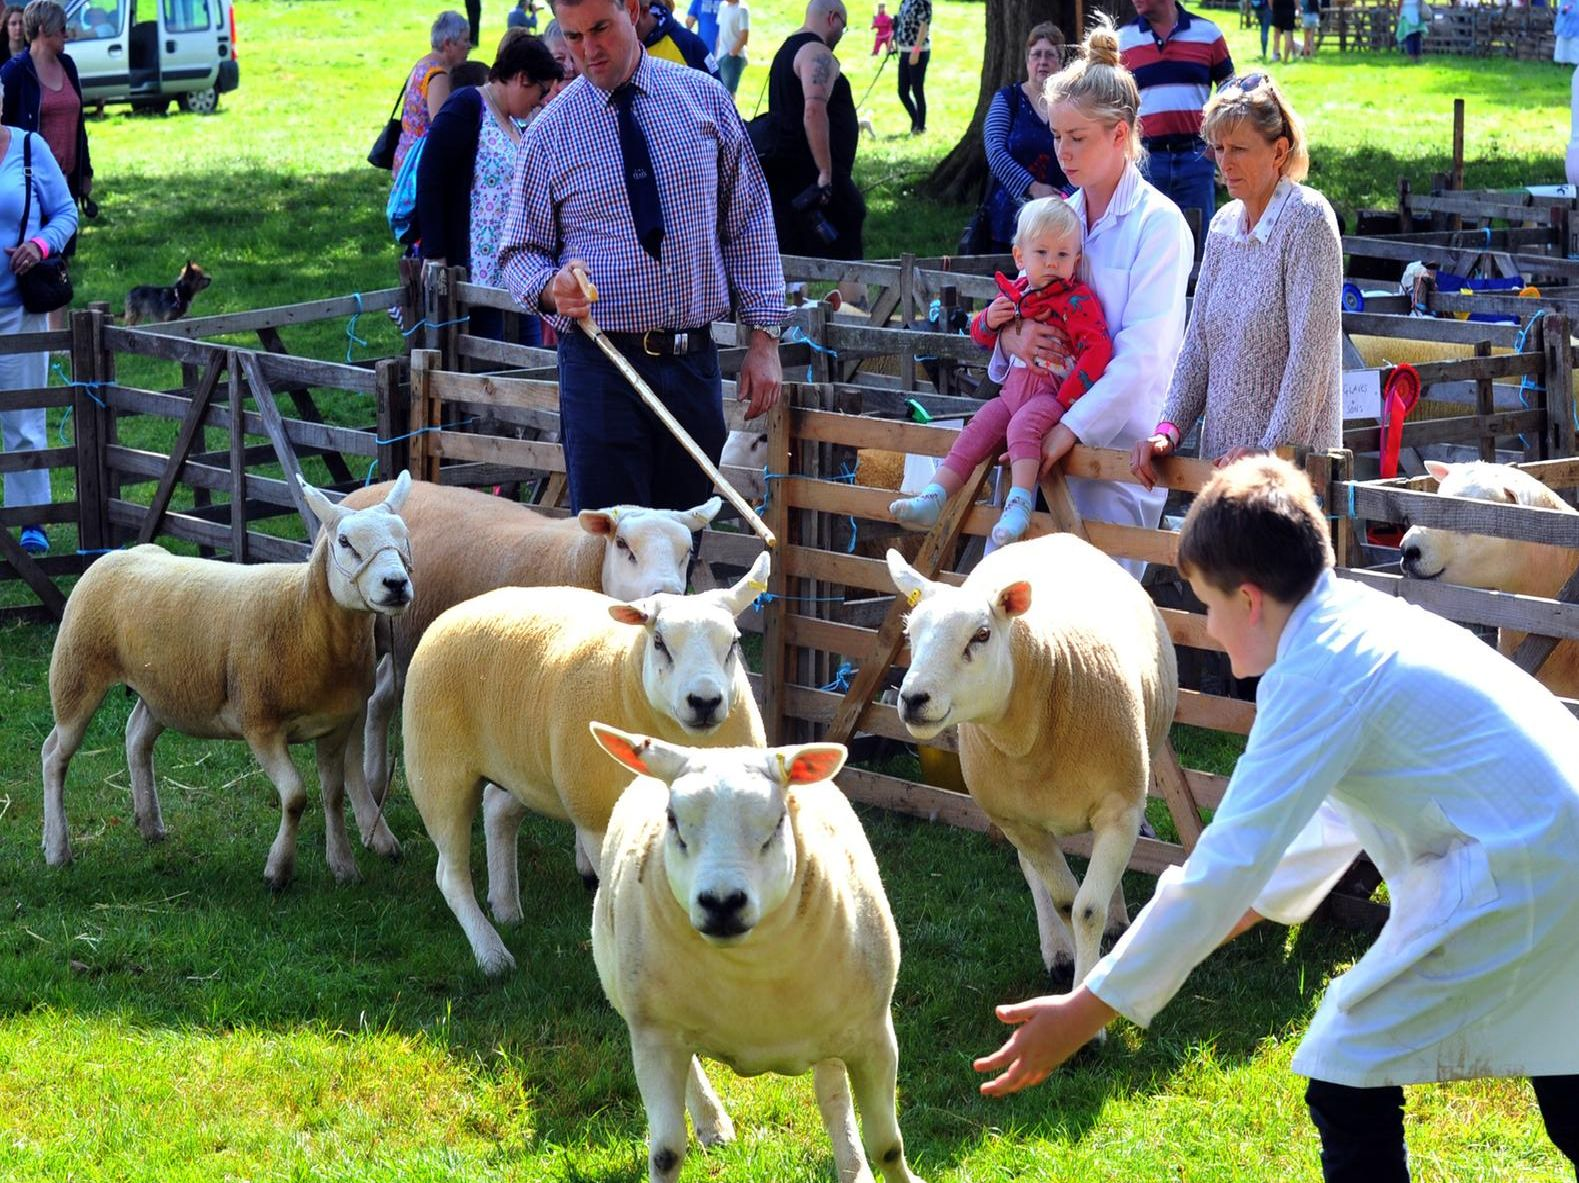 Trying to catch the Texel sheep in the judging ring.